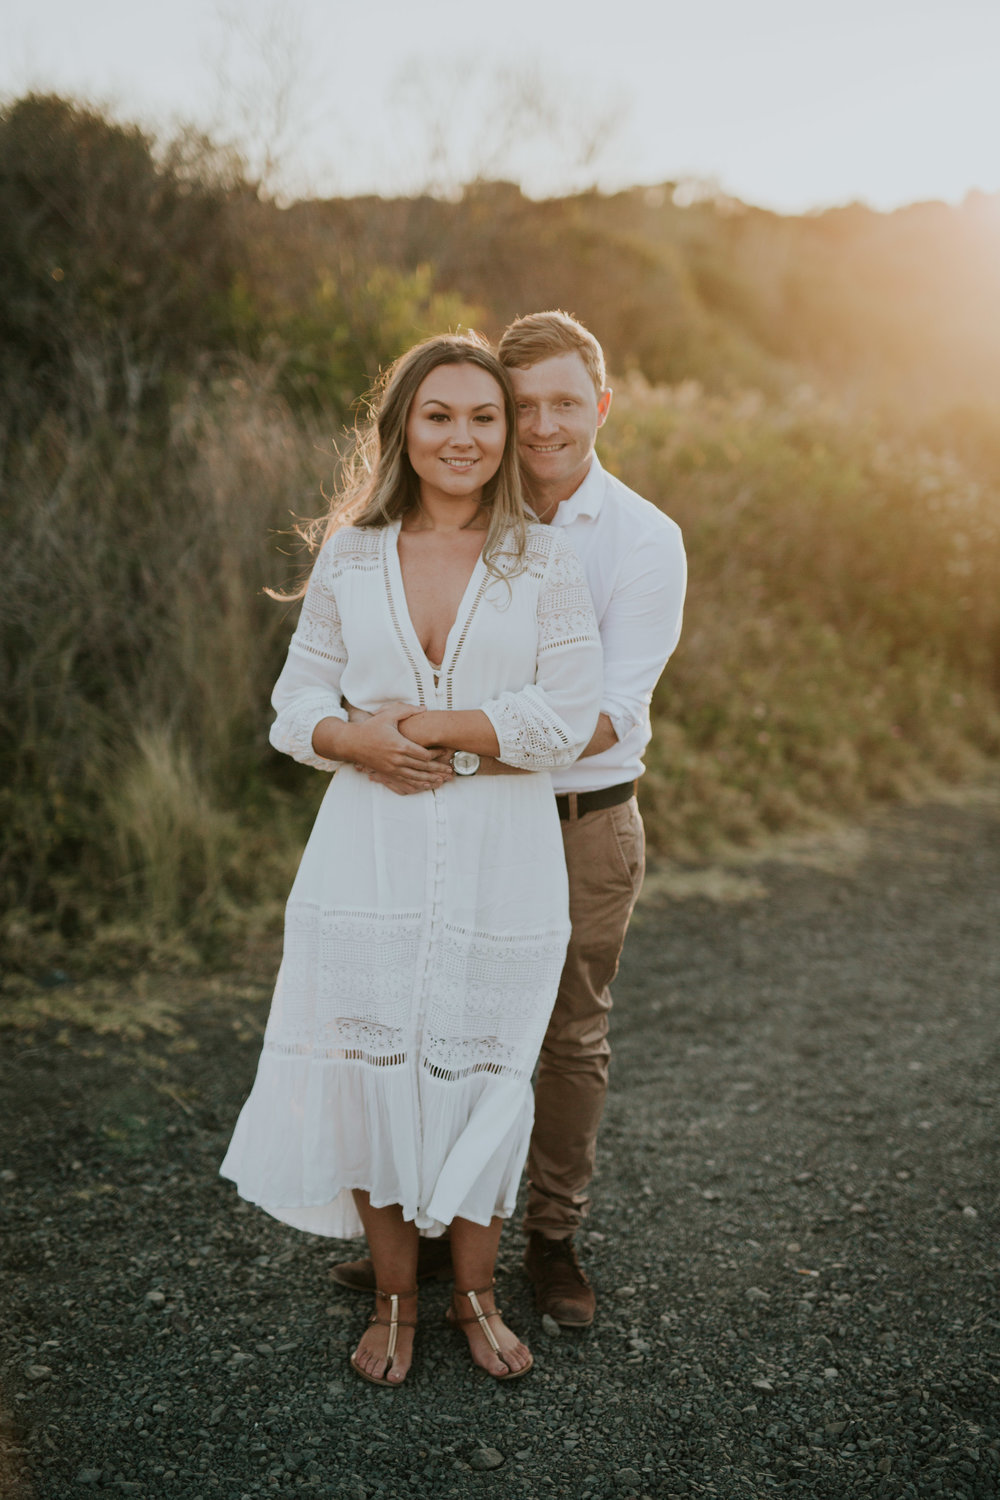 shanae+grant+Kiama+Engagement+Session-48.jpg